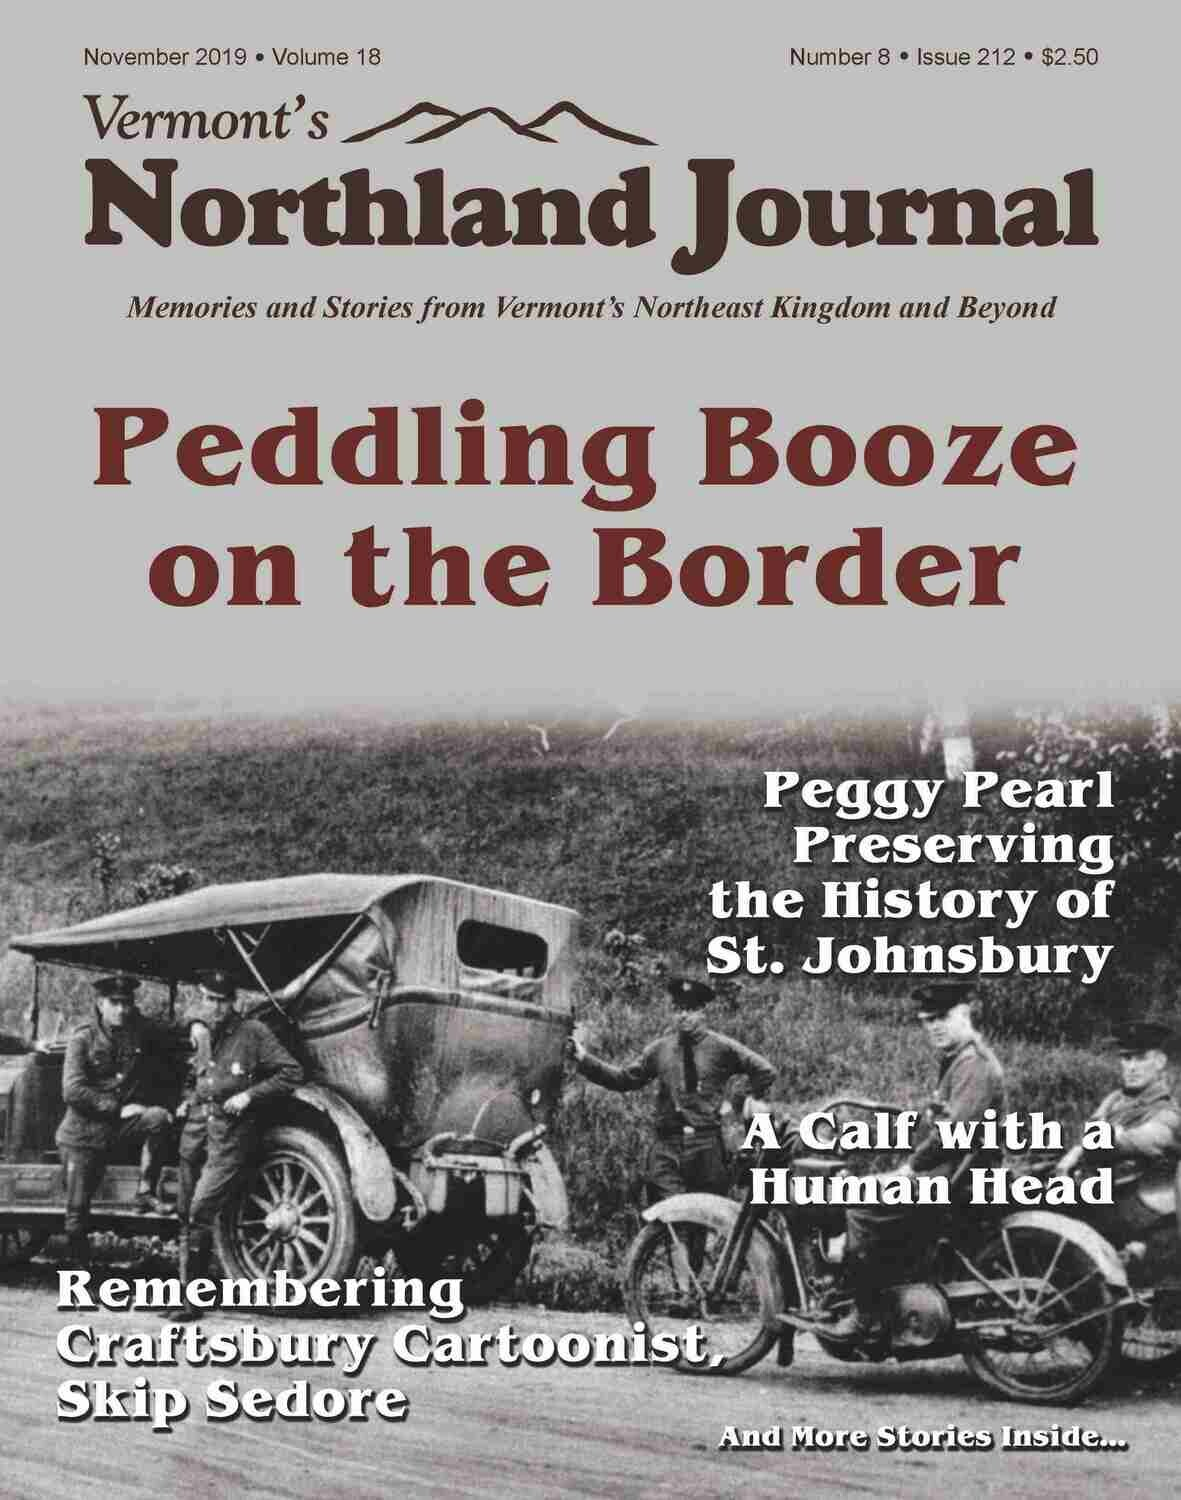 RESUBSCRIBE here to the Northland Journal